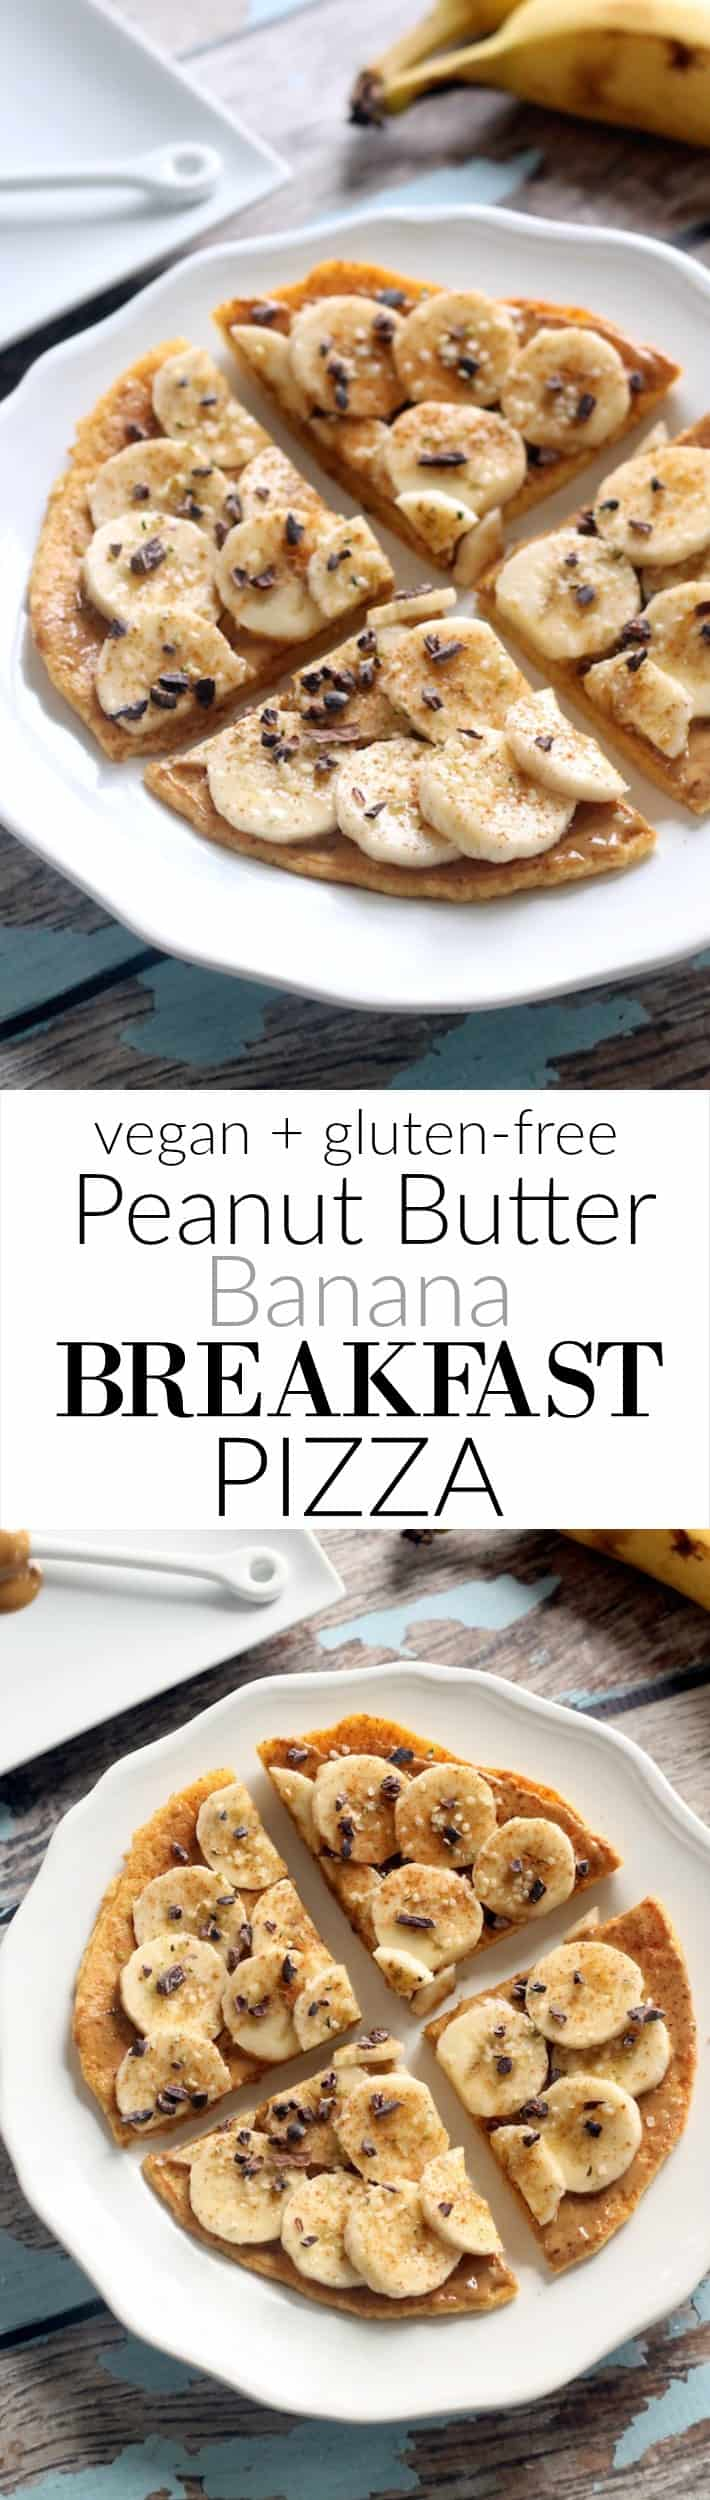 Flourless Peanut Butter Banana Breakfast Pizza (Vegan + Gluten-Free)